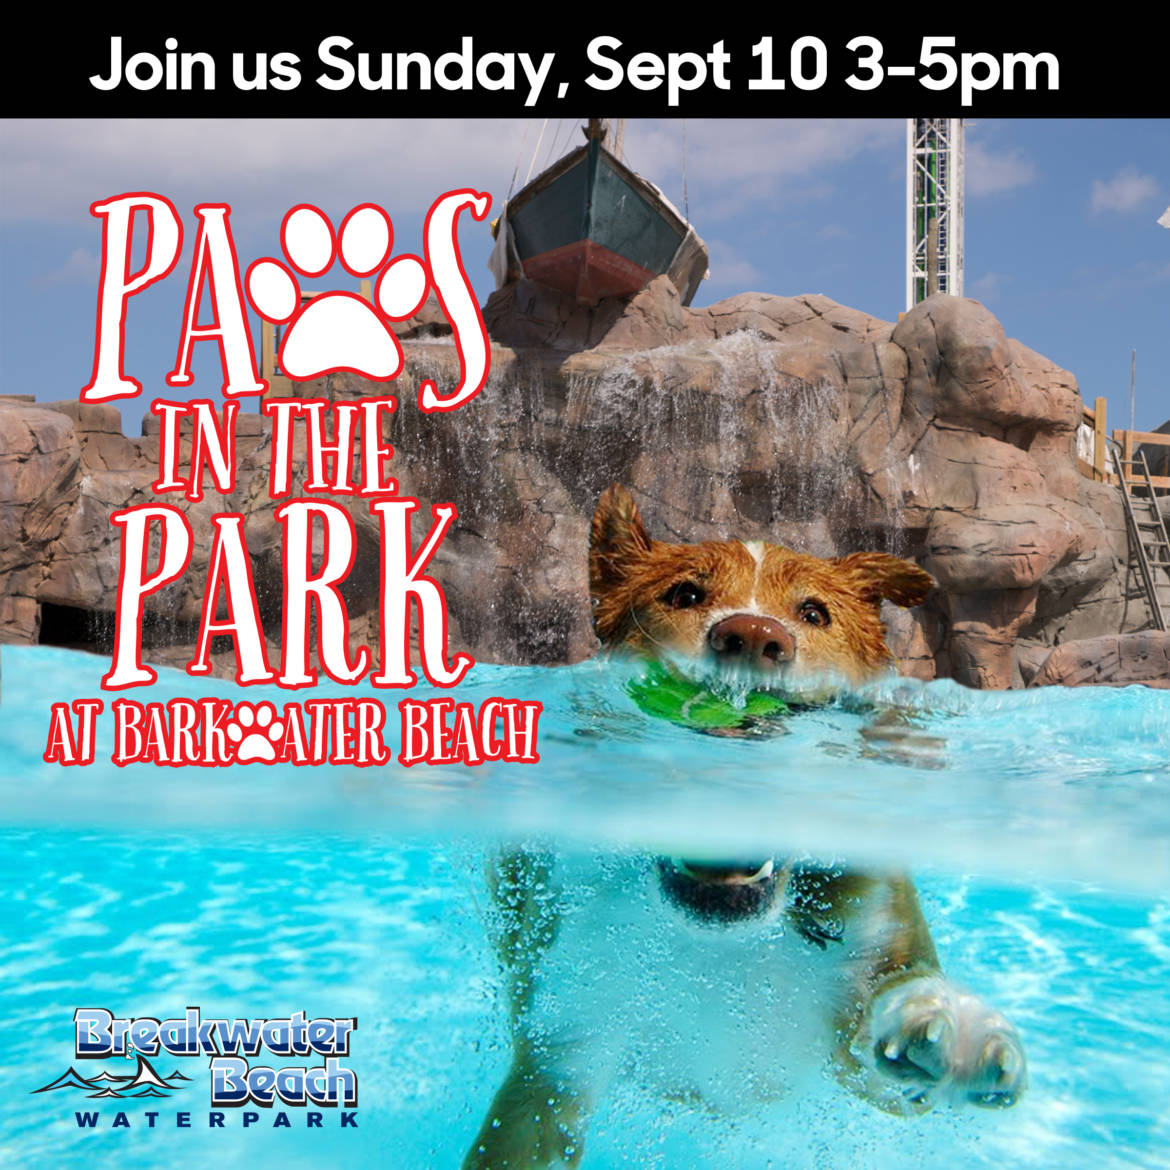 paws-in-the-park-fb-1.jpg